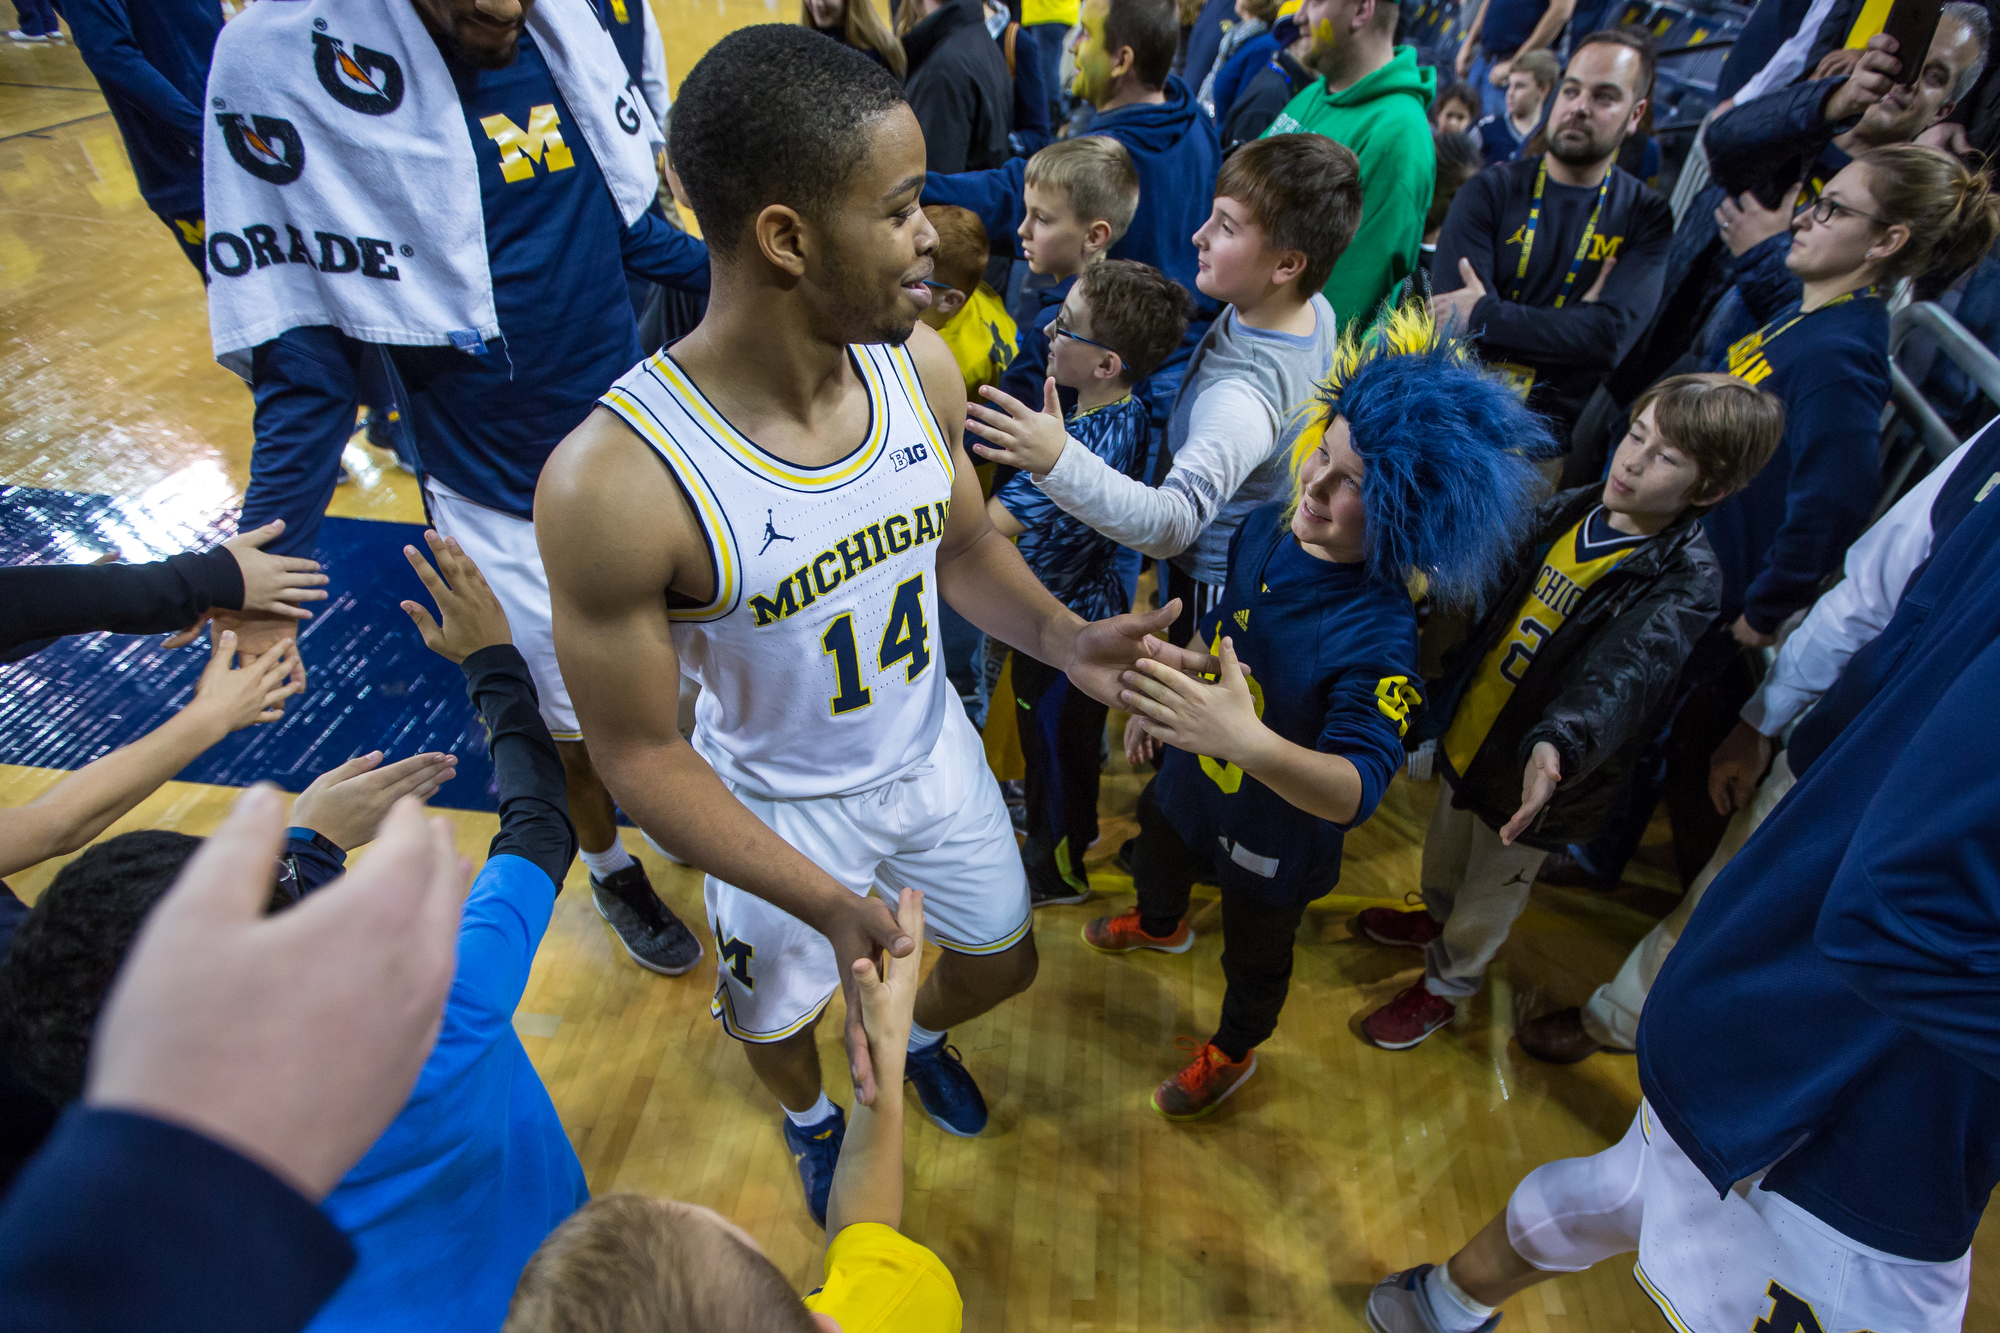 Michigan�s Fred Wright-Jones (14) shakes hands with young fans after the completion of play at the Crisler Center on Saturday, December 17, 2016. The Michigan Wolverines beat the Maryland Eastern Shore Hawks 98-49. Matt Weigand | The Ann Arbor News